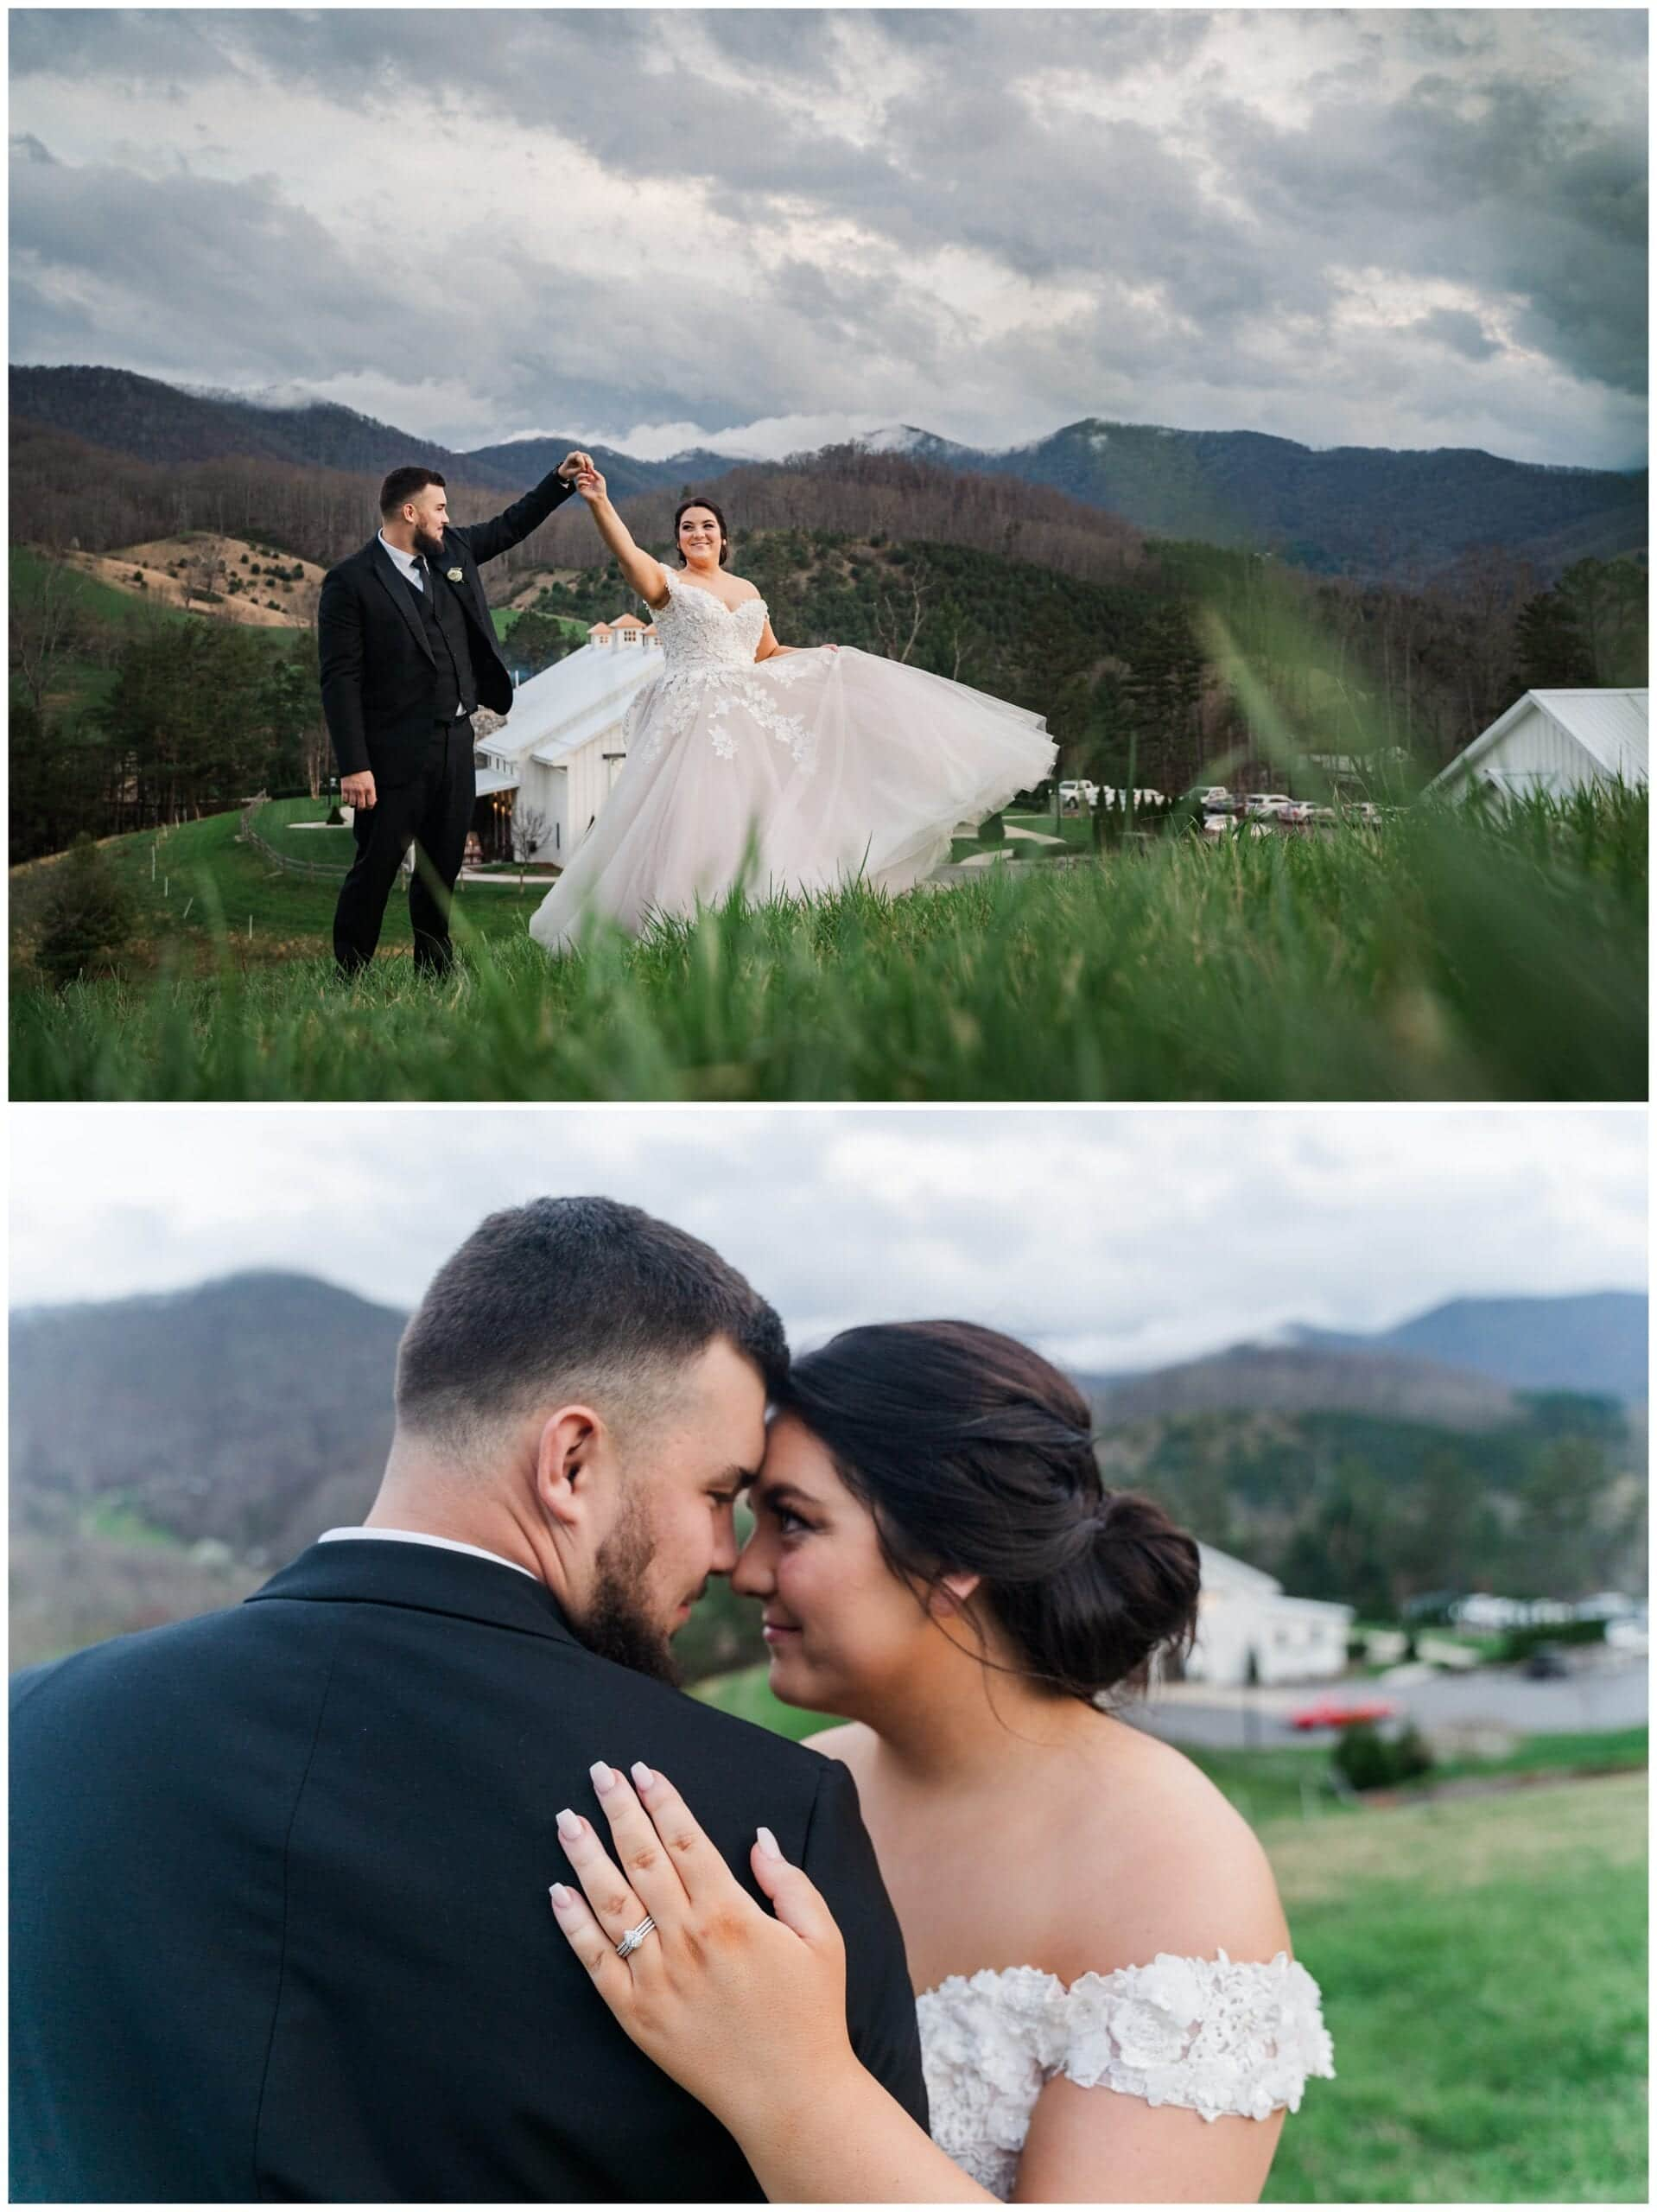 Bride and groom in field with mountains in the background